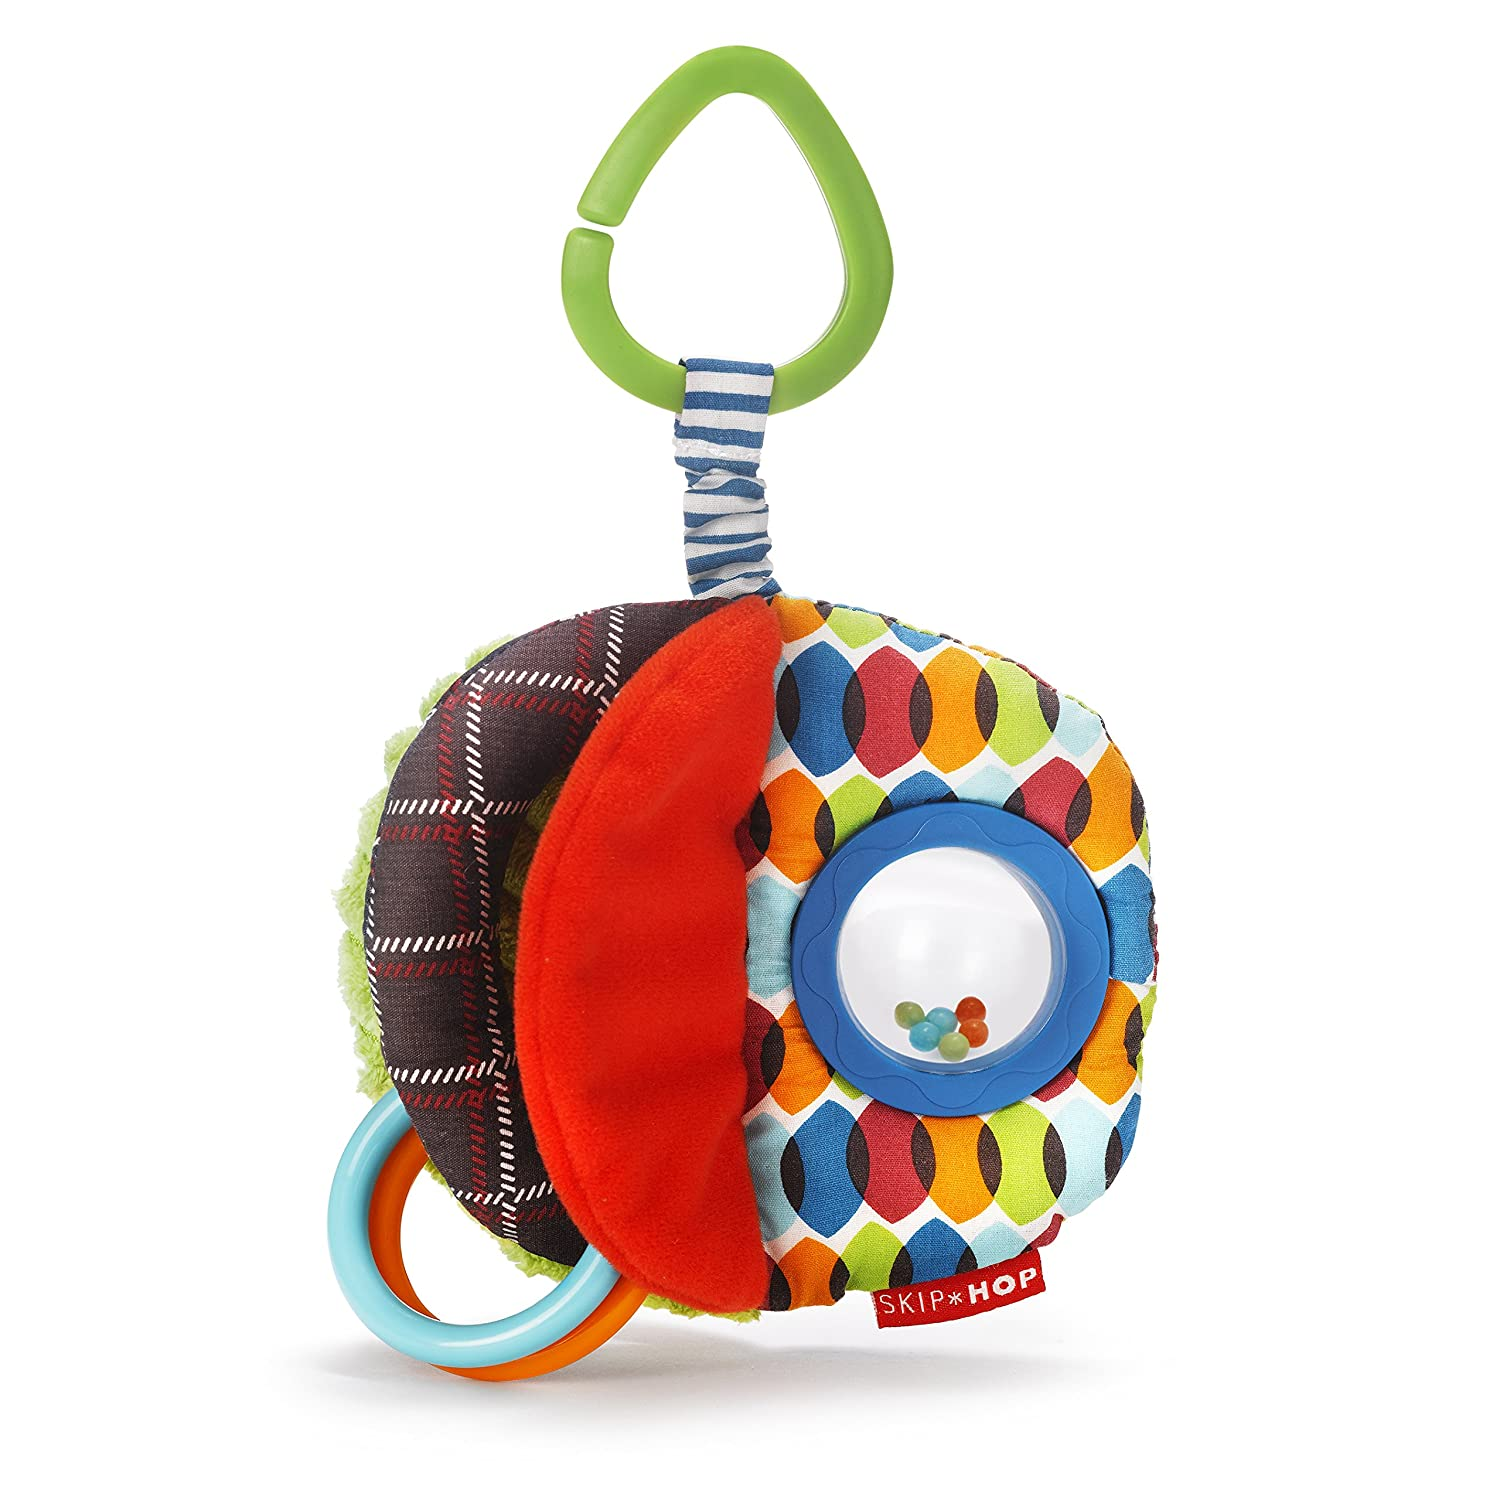 Skip Hop Rattle and Play Stroller Toy Jumble Ball Amazon Baby